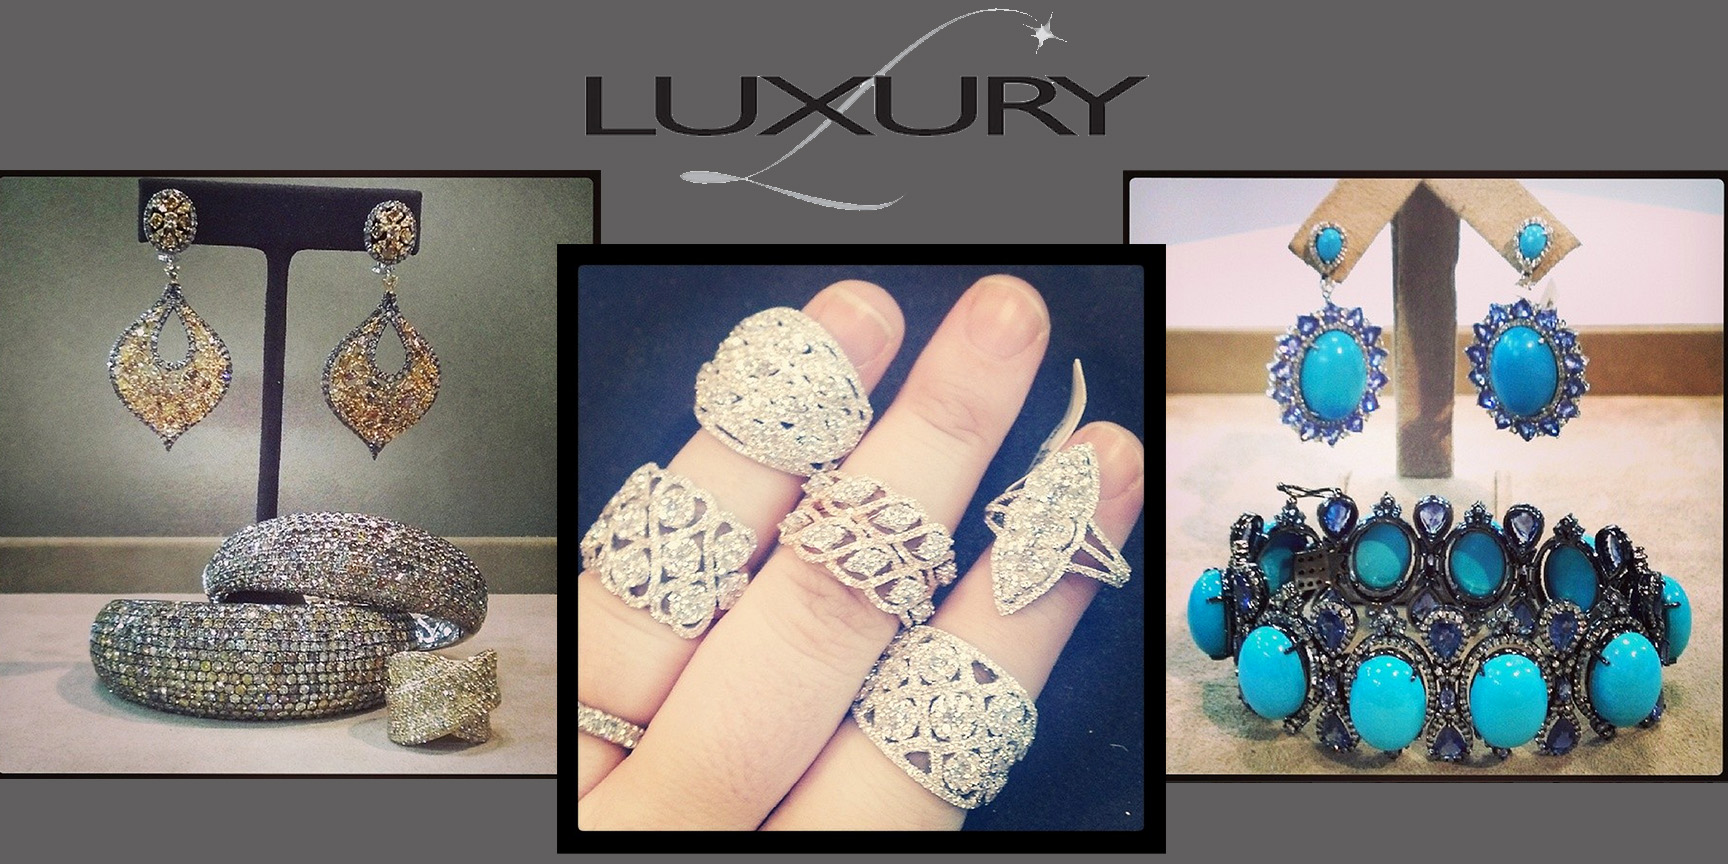 Stop and see us at Luxury in Vegas at Booth #933